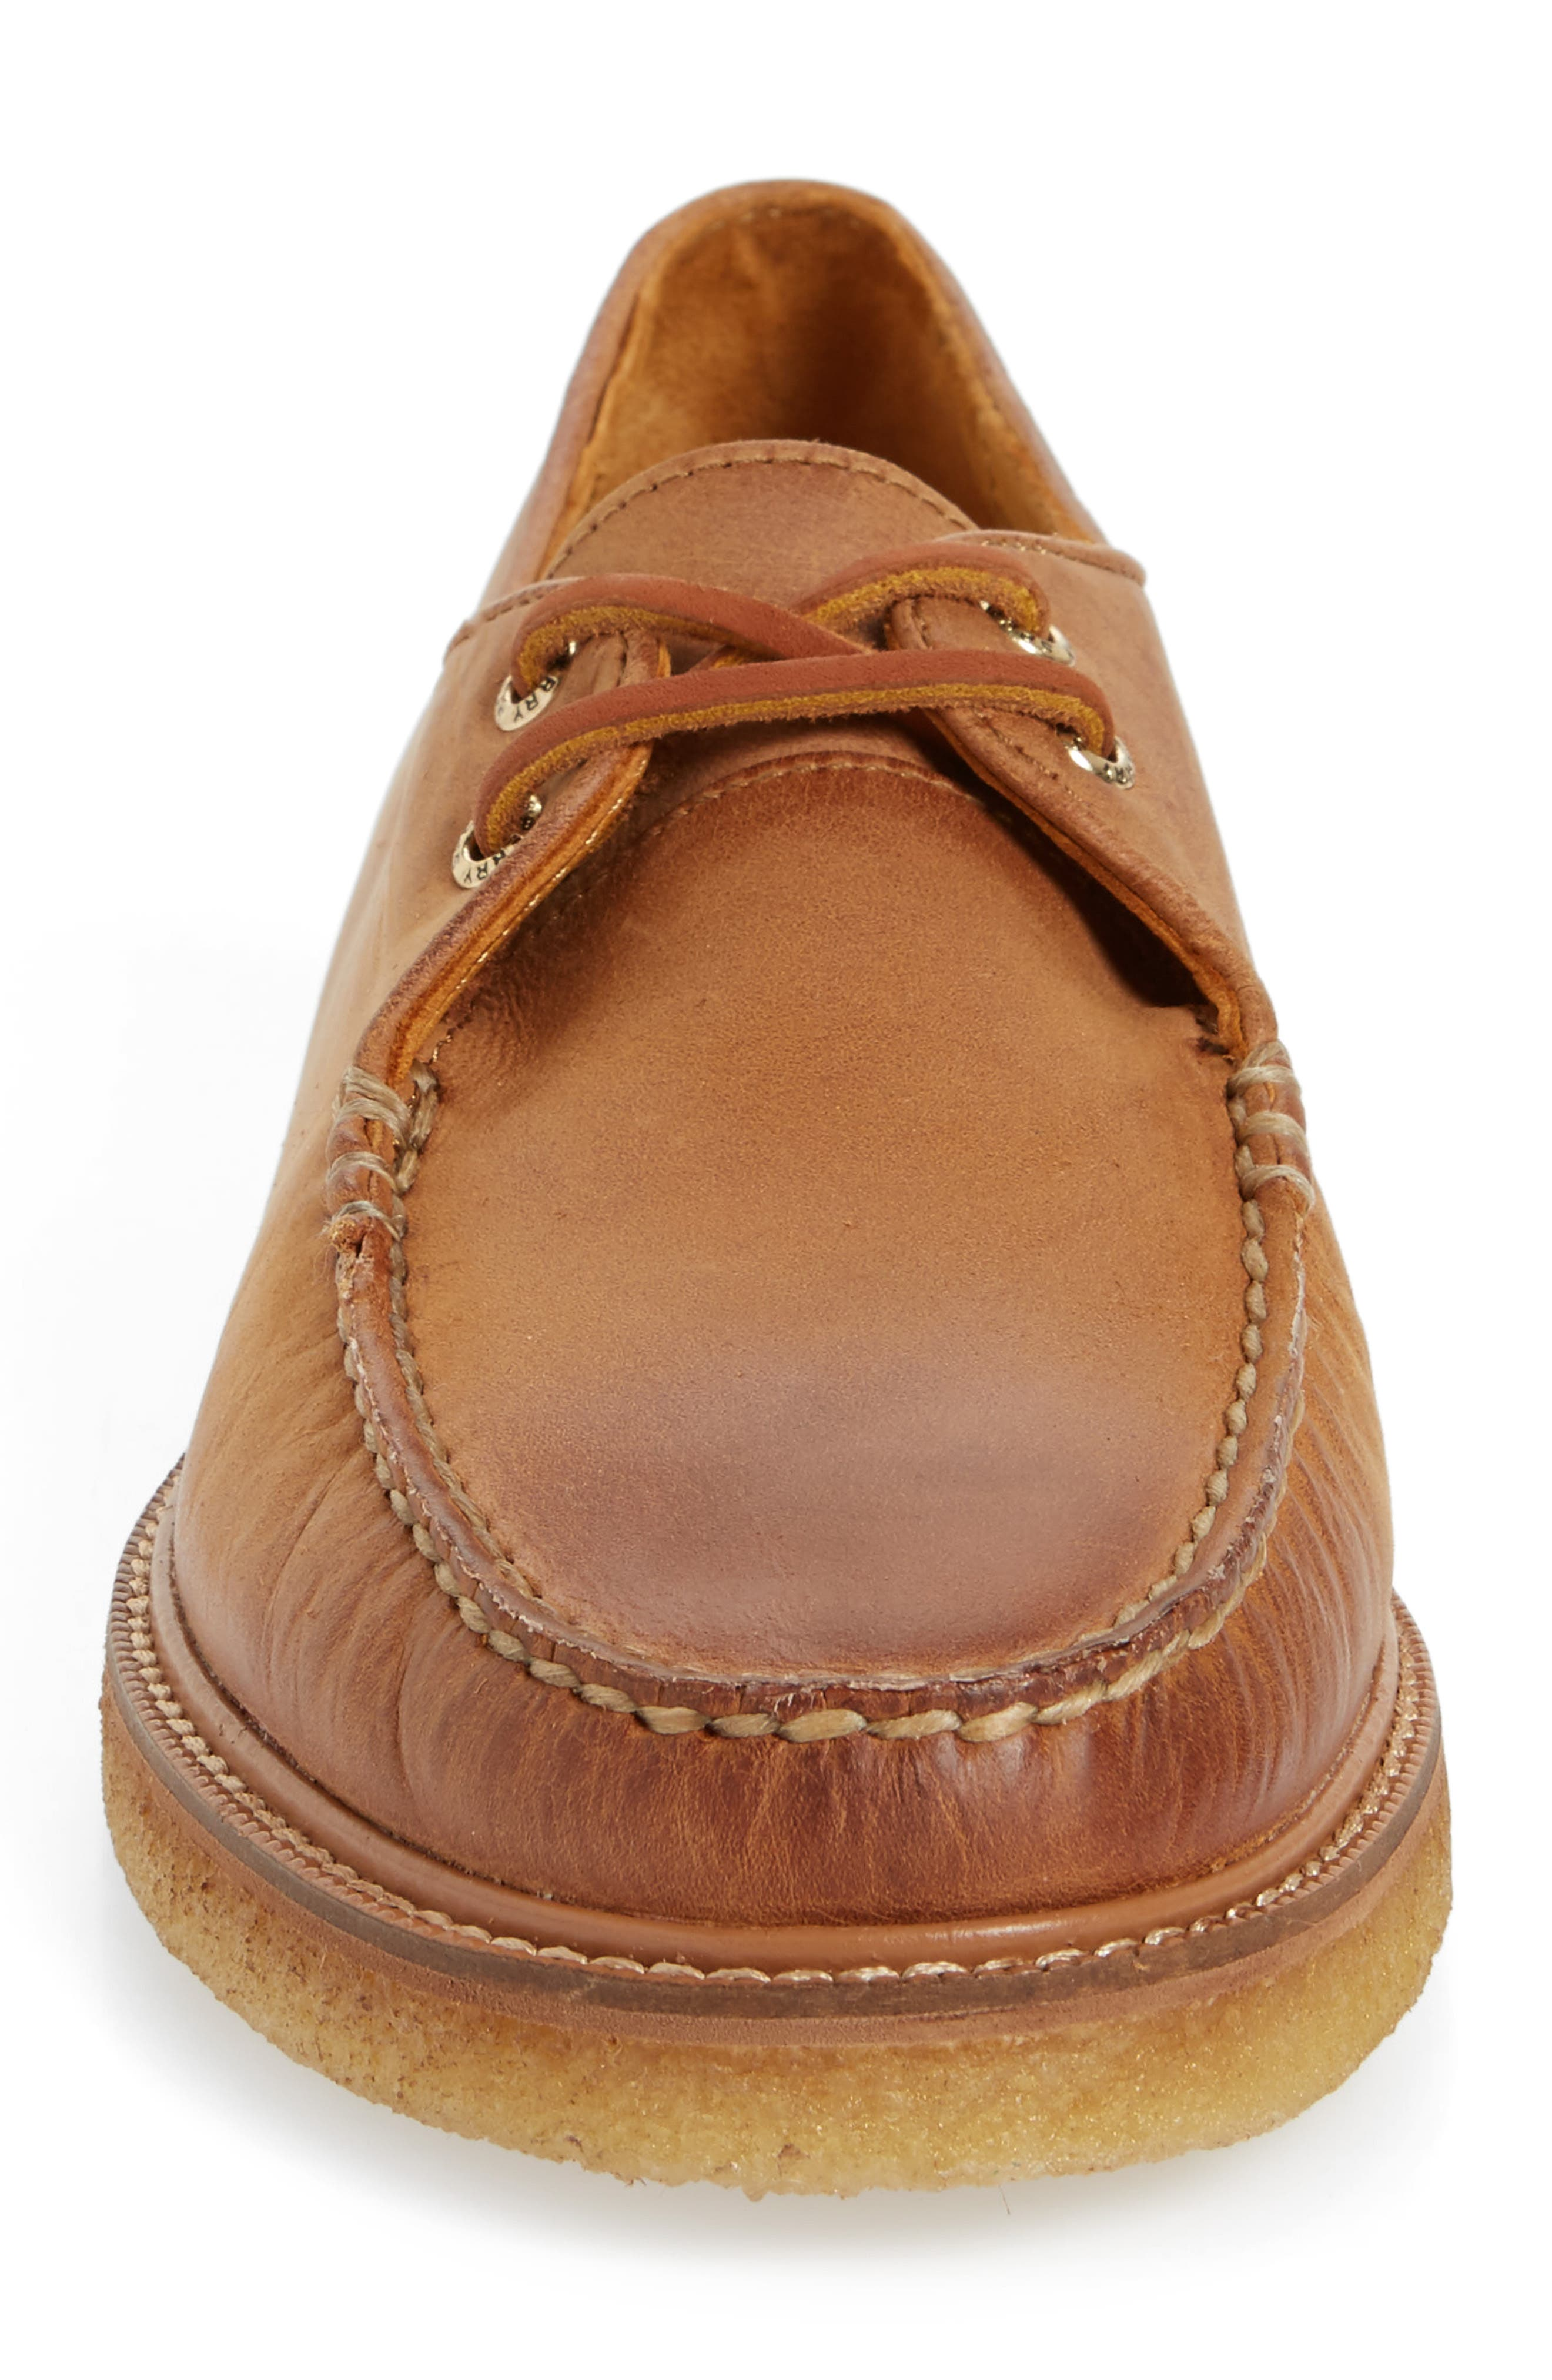 Gold Cup Captain's Crepe Sole Oxford,                             Alternate thumbnail 4, color,                             Tan Leather